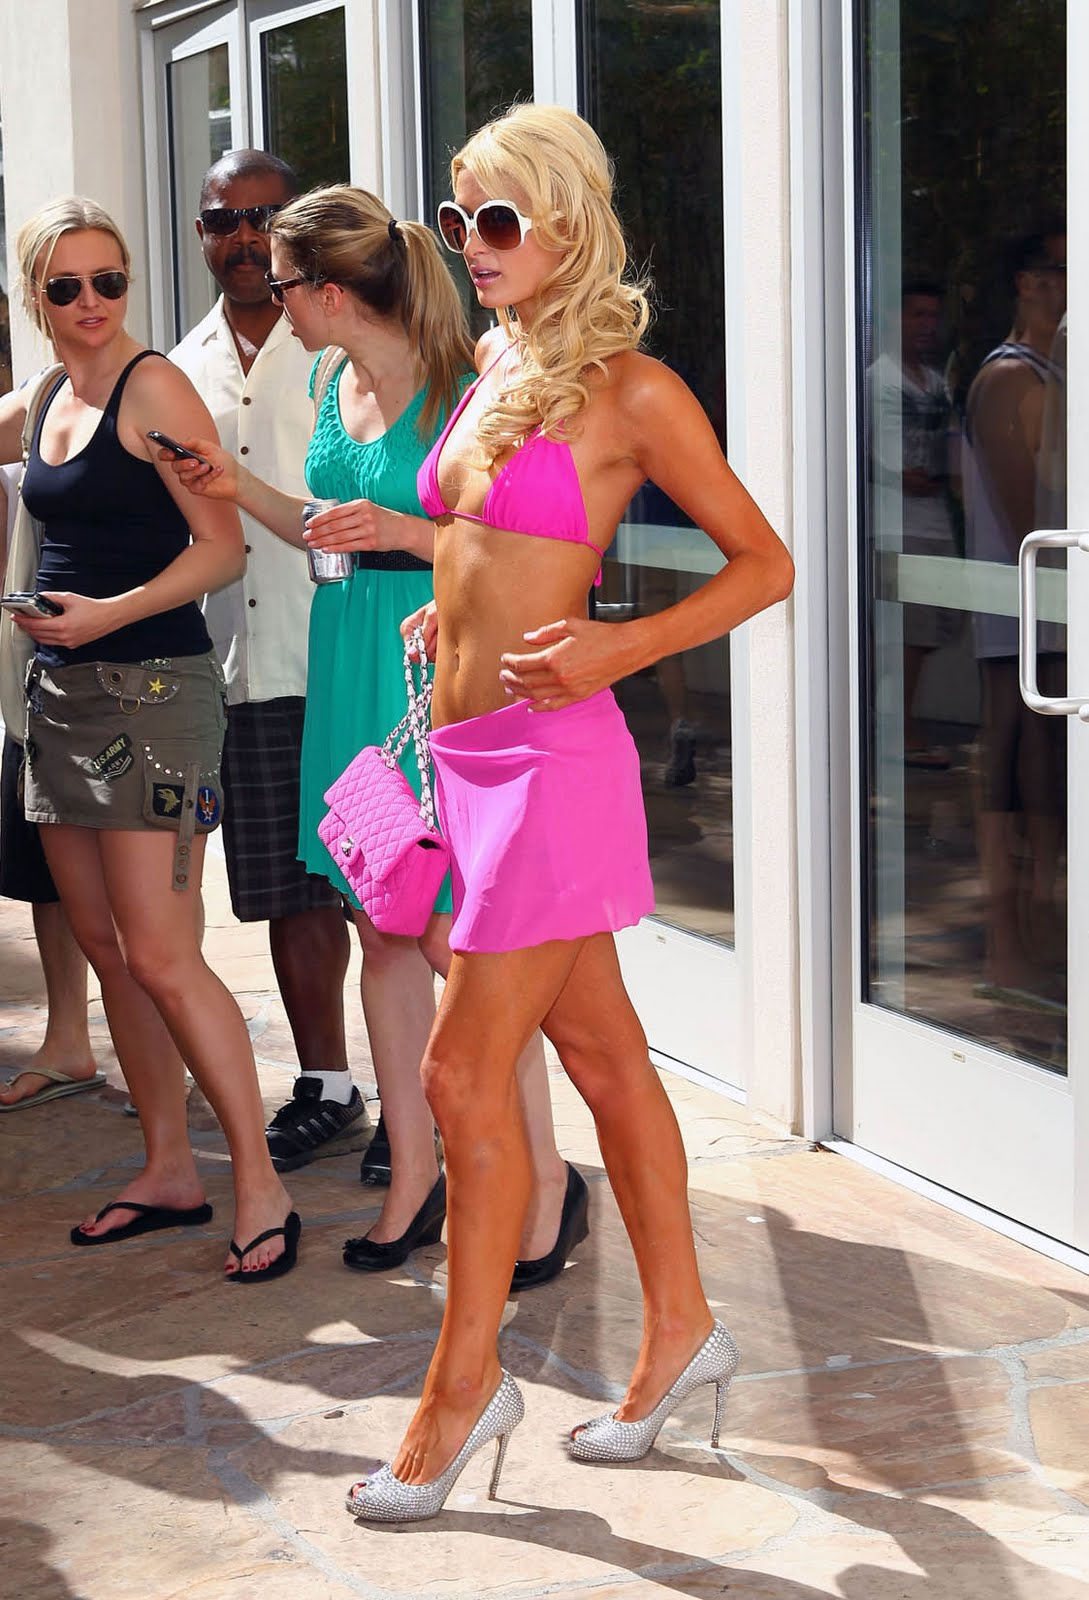 paris hilton pink bikini wrap 2 Gay Interracial, Interracial Gay Sex, Gay Interracial Porn, Interracial Gay ...